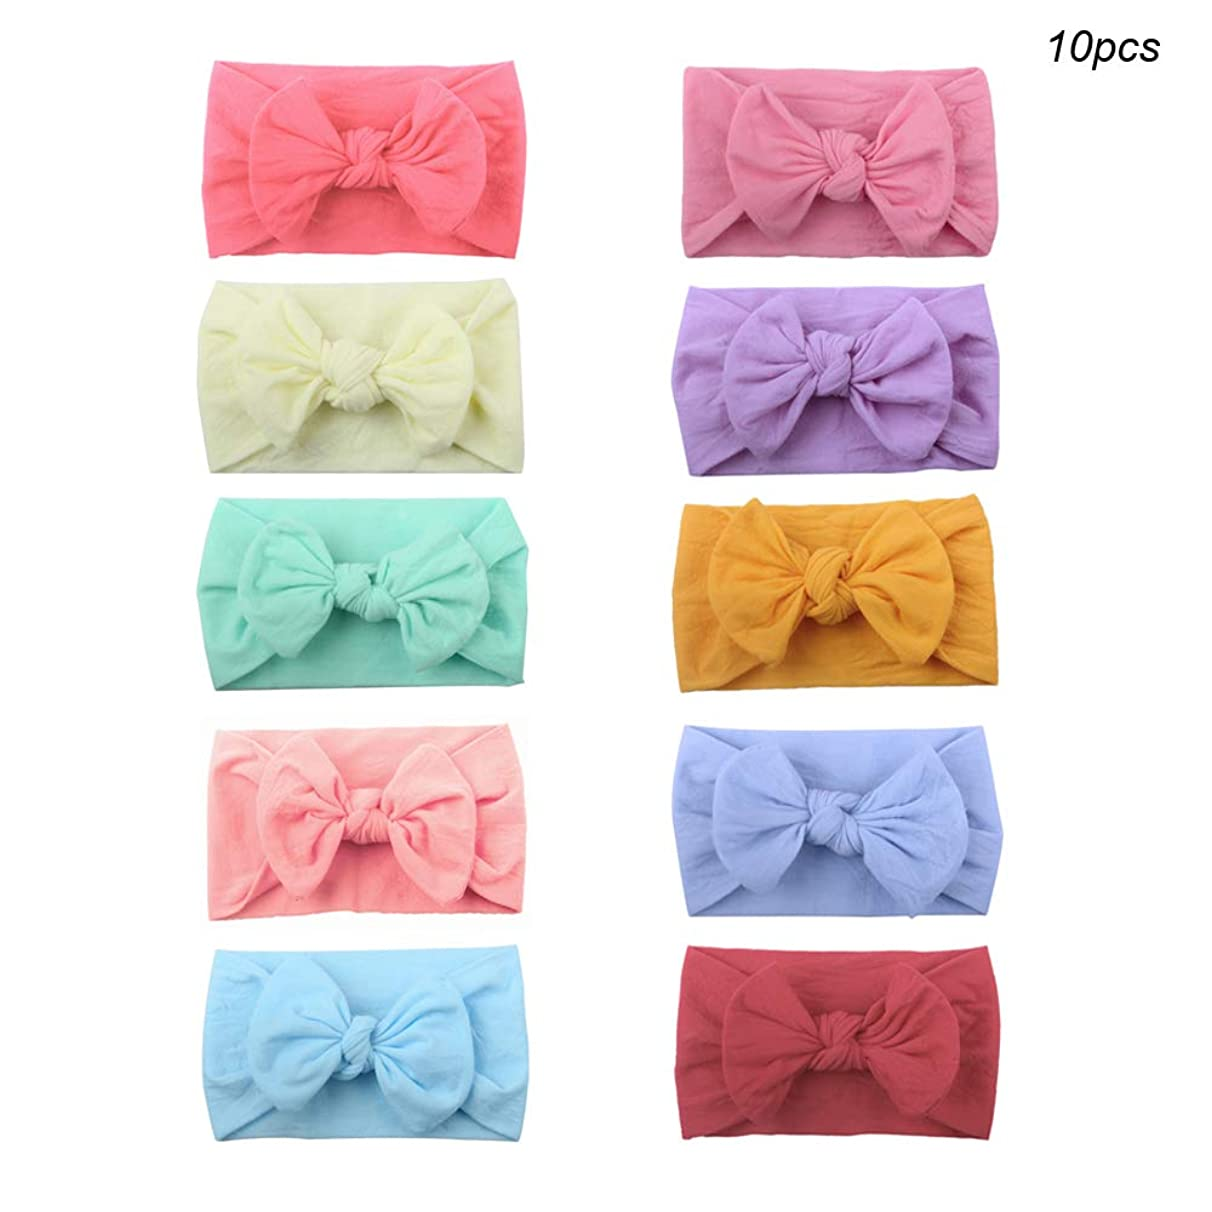 Huture 10pcs Baby Super Soft Nylon Bow Baby Hairbands Elastic Wide Bow Knot Hairband Bows Knot Turban Headwrap Baby Girl Kids Headbands Hair Bows Elastic Bands for Newborn Infant Toddler